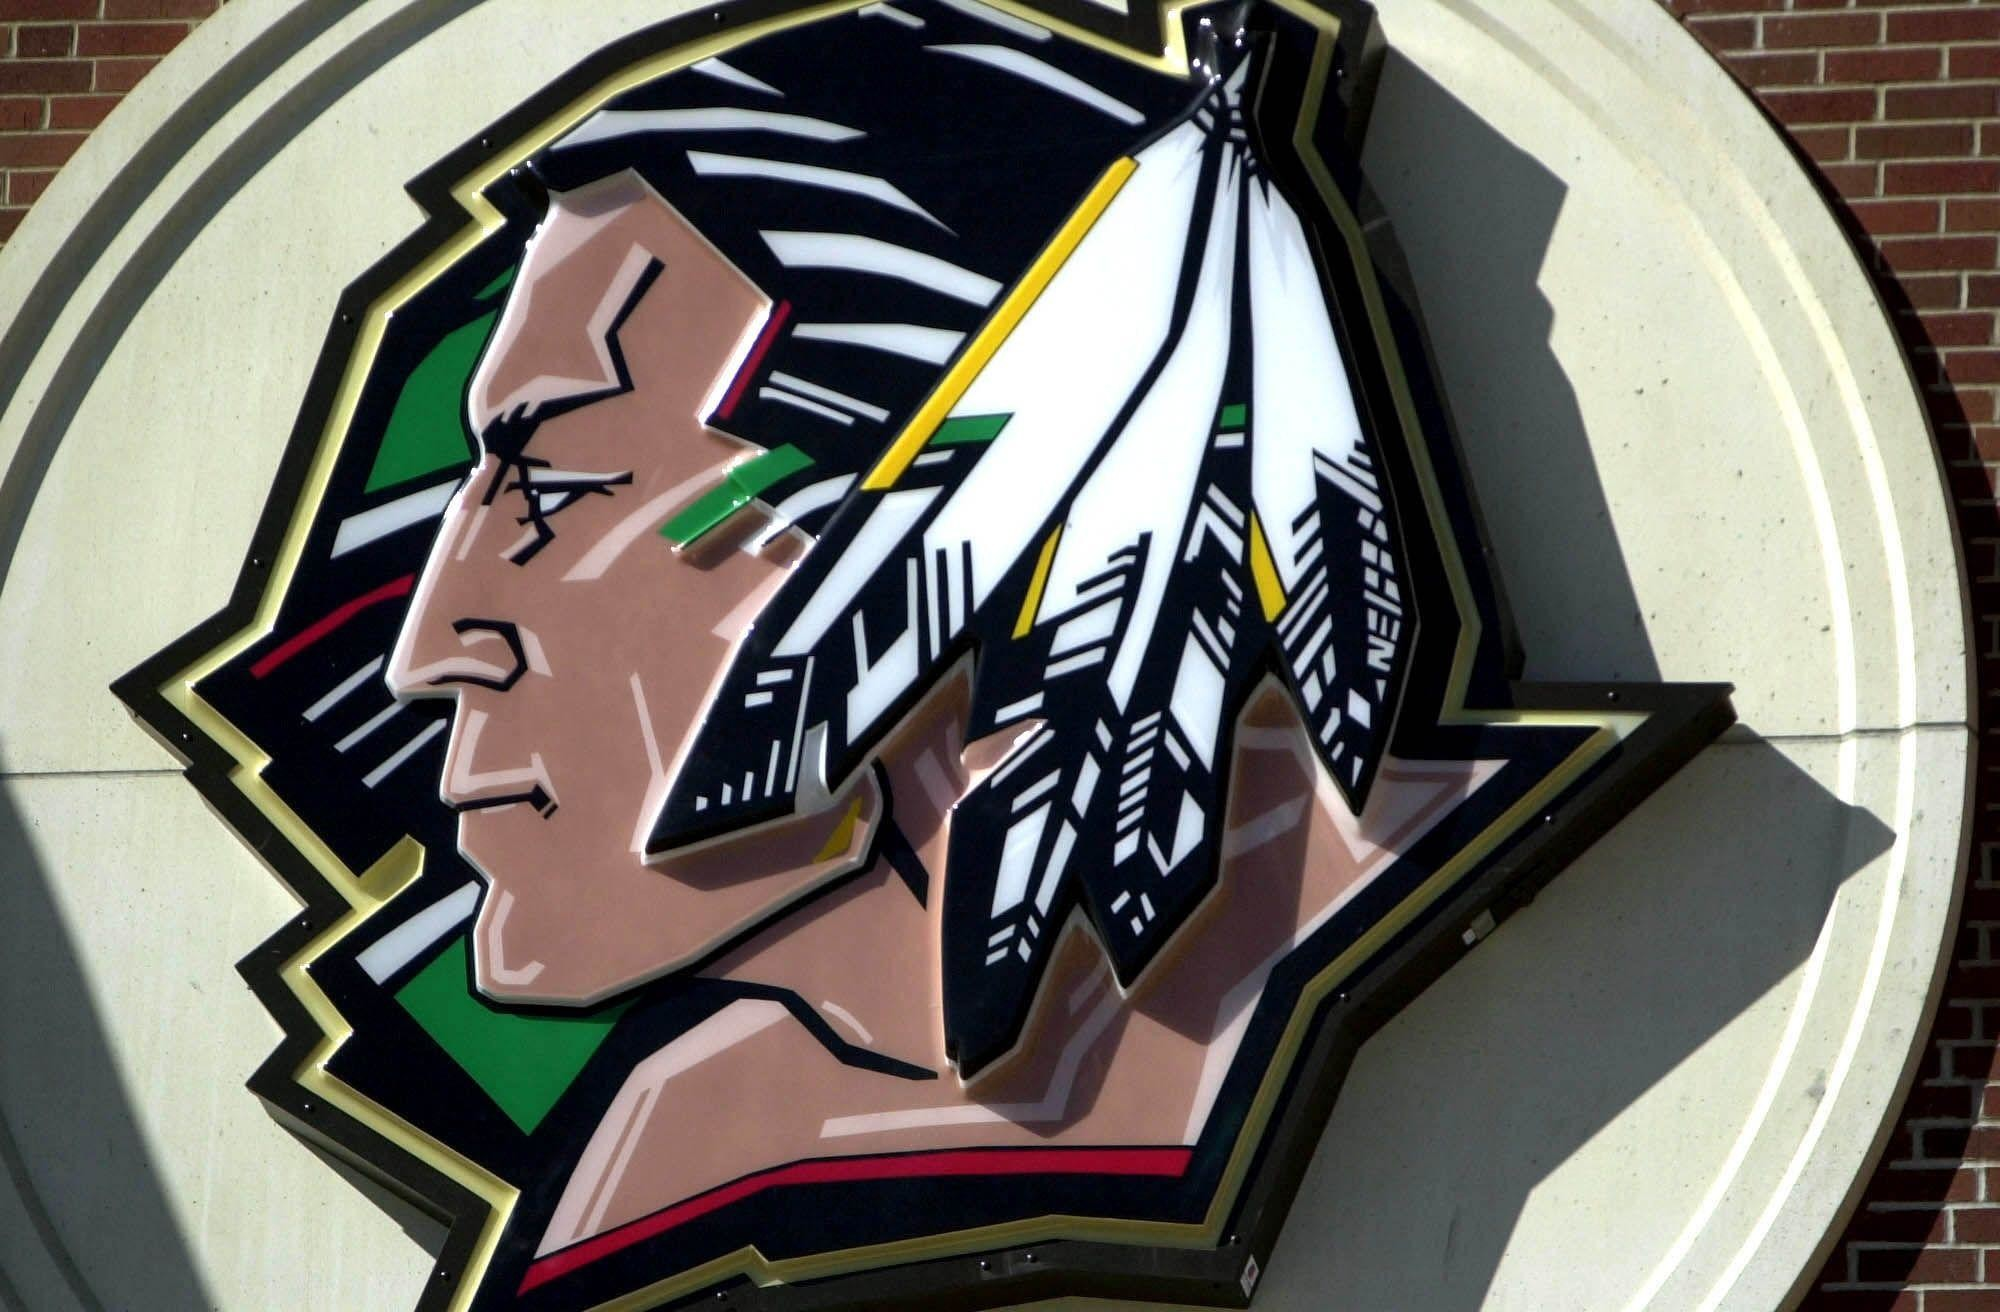 2000x1312 Fighting Sioux Logo - Viewing Gallery